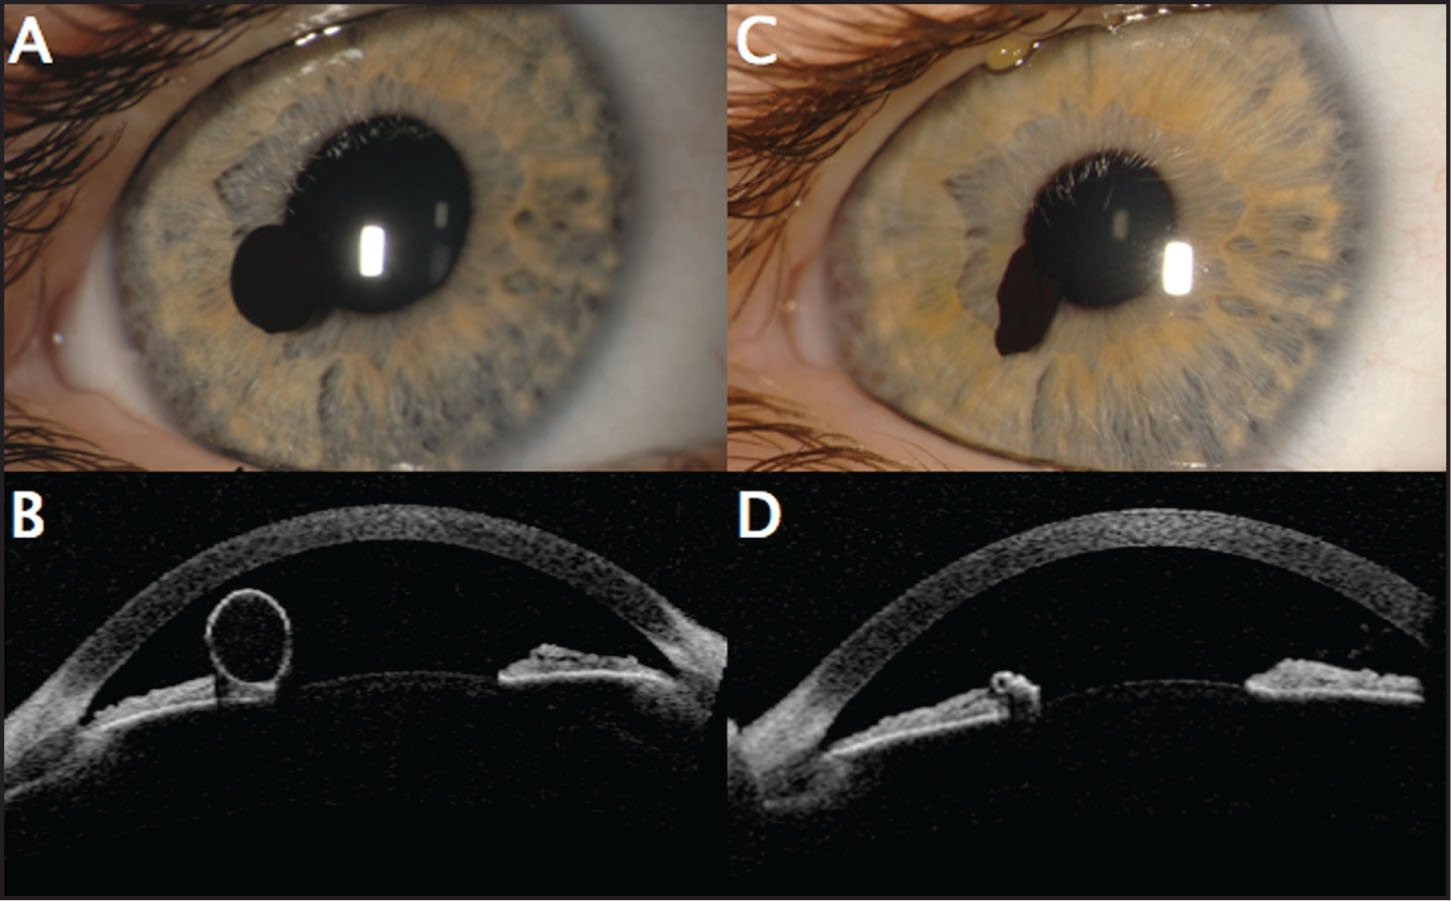 A 3-Year-Old Girl with Black, Pupillary Margin Iris Pigment Epithelial Cyst. (A) At Presentation, the Round, Inflated Black Cyst at the Pupillary Margin Overhangs the Iris Stroma. (B) Anterior-Segment Optical Coherence Tomography (AS-OCT) of Figure a Displays the Thin-Walled, Inflated Cyst at the Pupillary Margin, Arising from a Strand of Iris Pigment Epithelial Cyst. (C) Three Months Later, the Cyst Is Deflated with a Collapsed Appearance. (D) AS-OCT of Figure C Displays the Irregular, Collapsed Cyst with Abrupt Optical Shadowing.